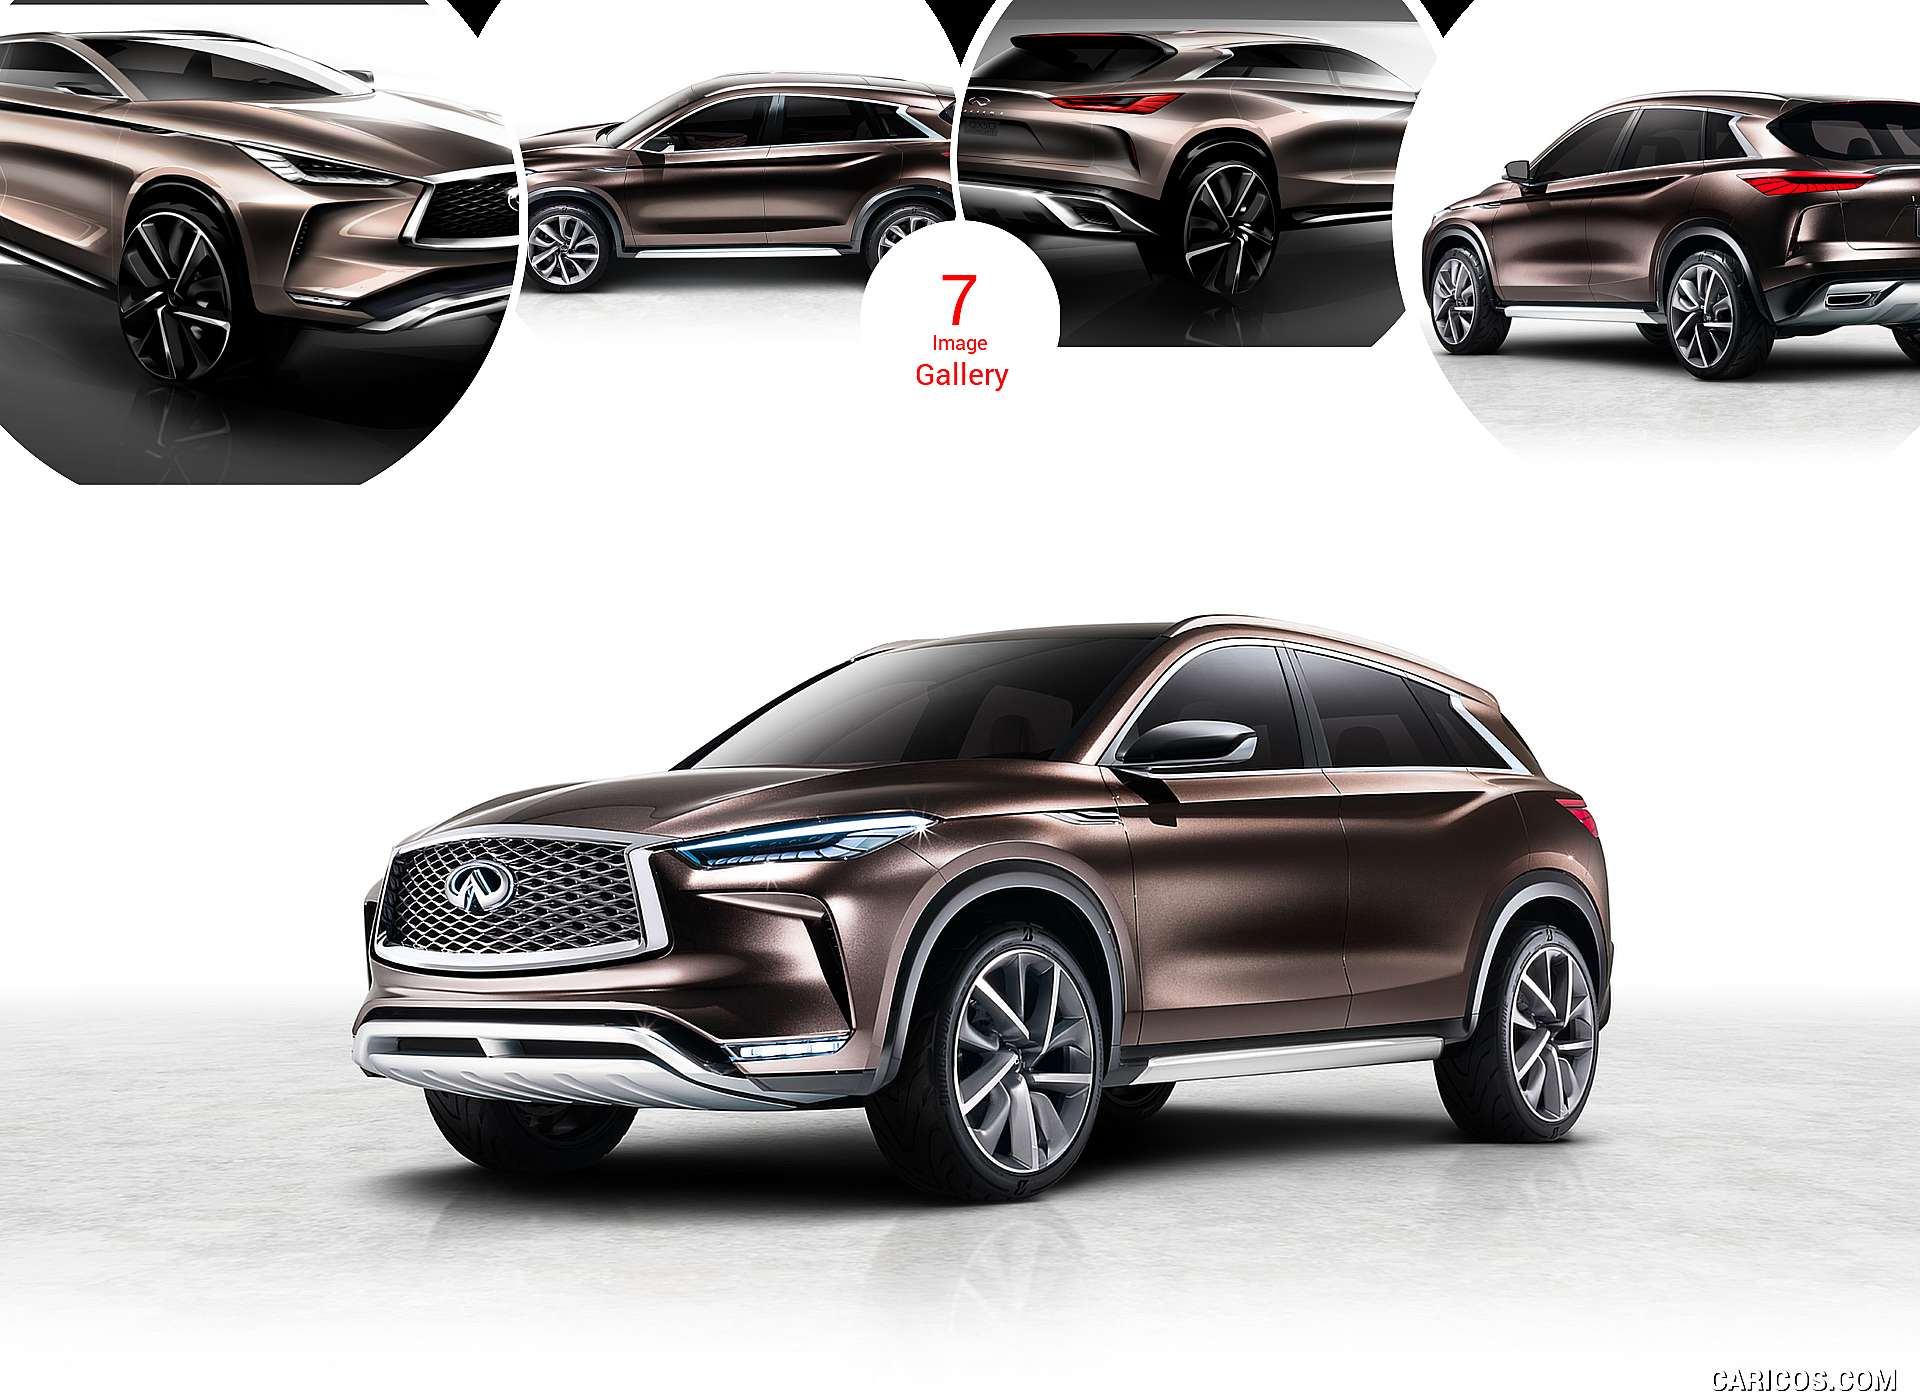 2017 infiniti qx50 concept. Black Bedroom Furniture Sets. Home Design Ideas